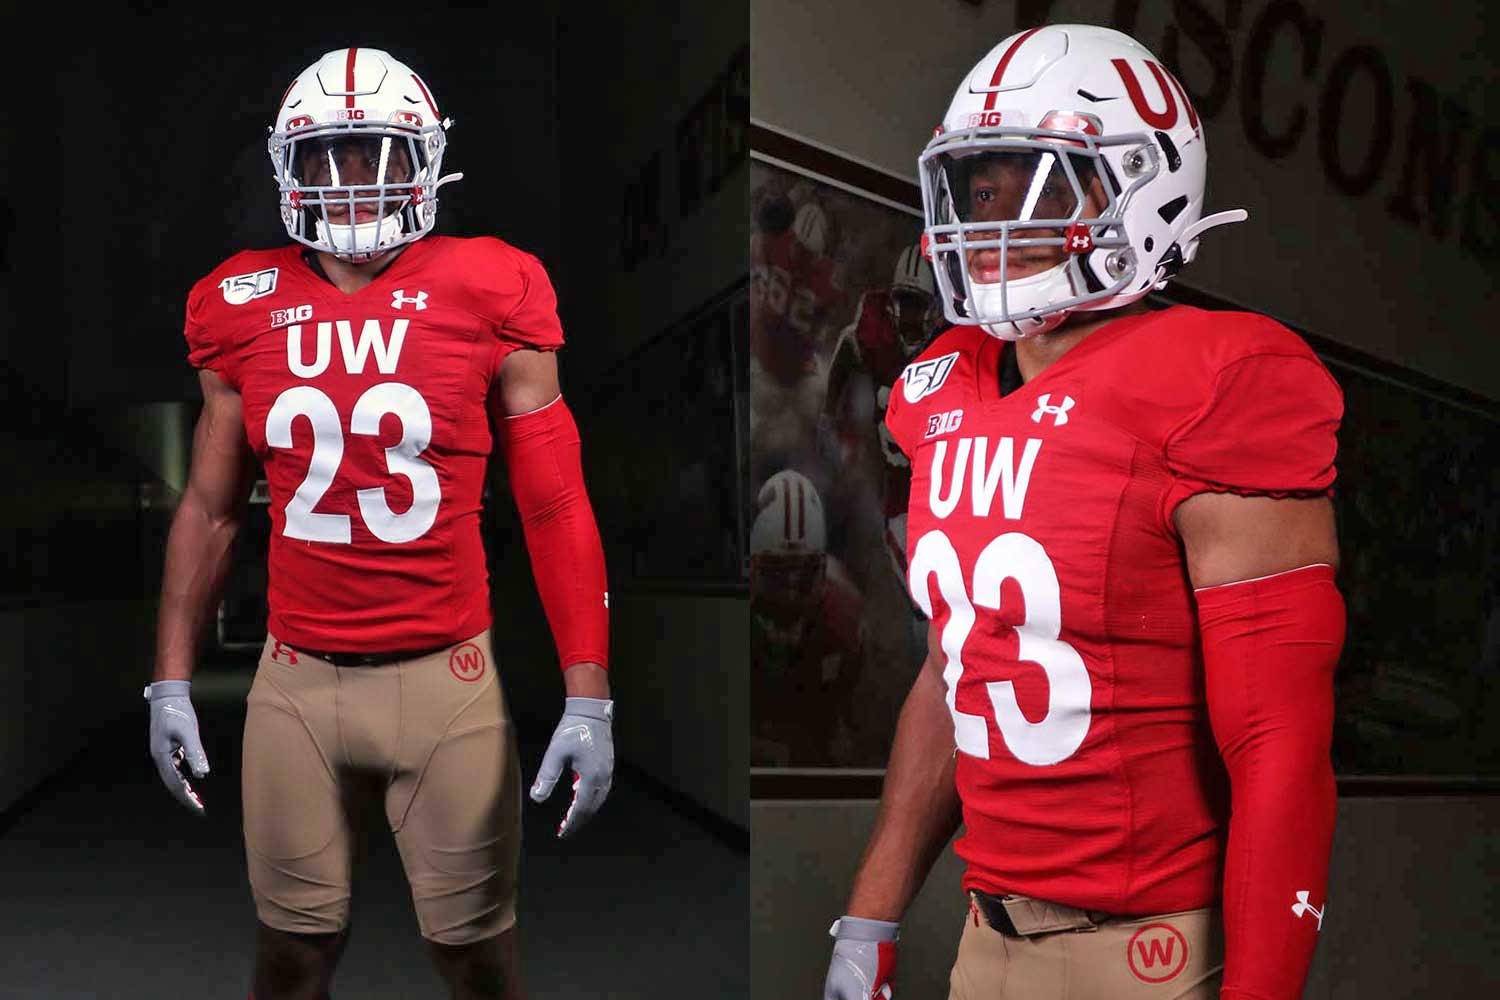 throwback college football jerseys, OFF 73%,Cheap price!